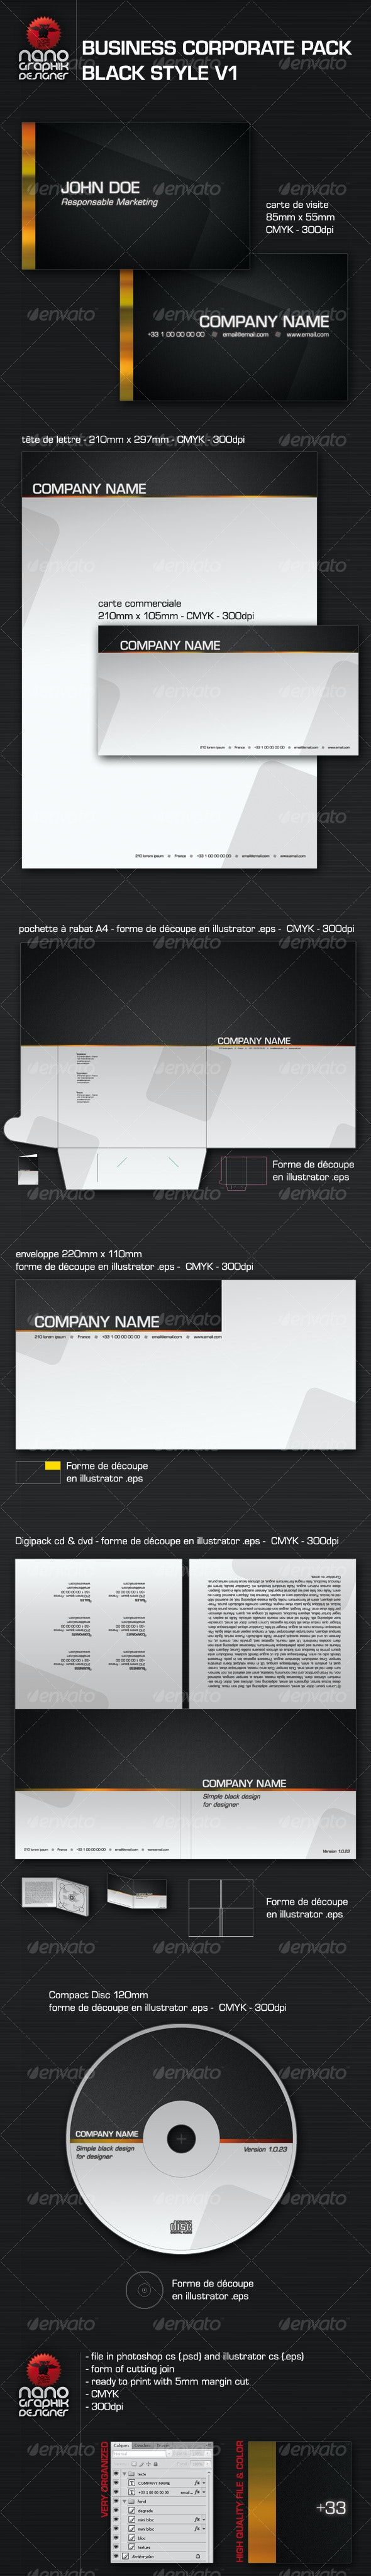 business corporate pack black style v1 - Corporate Business Cards